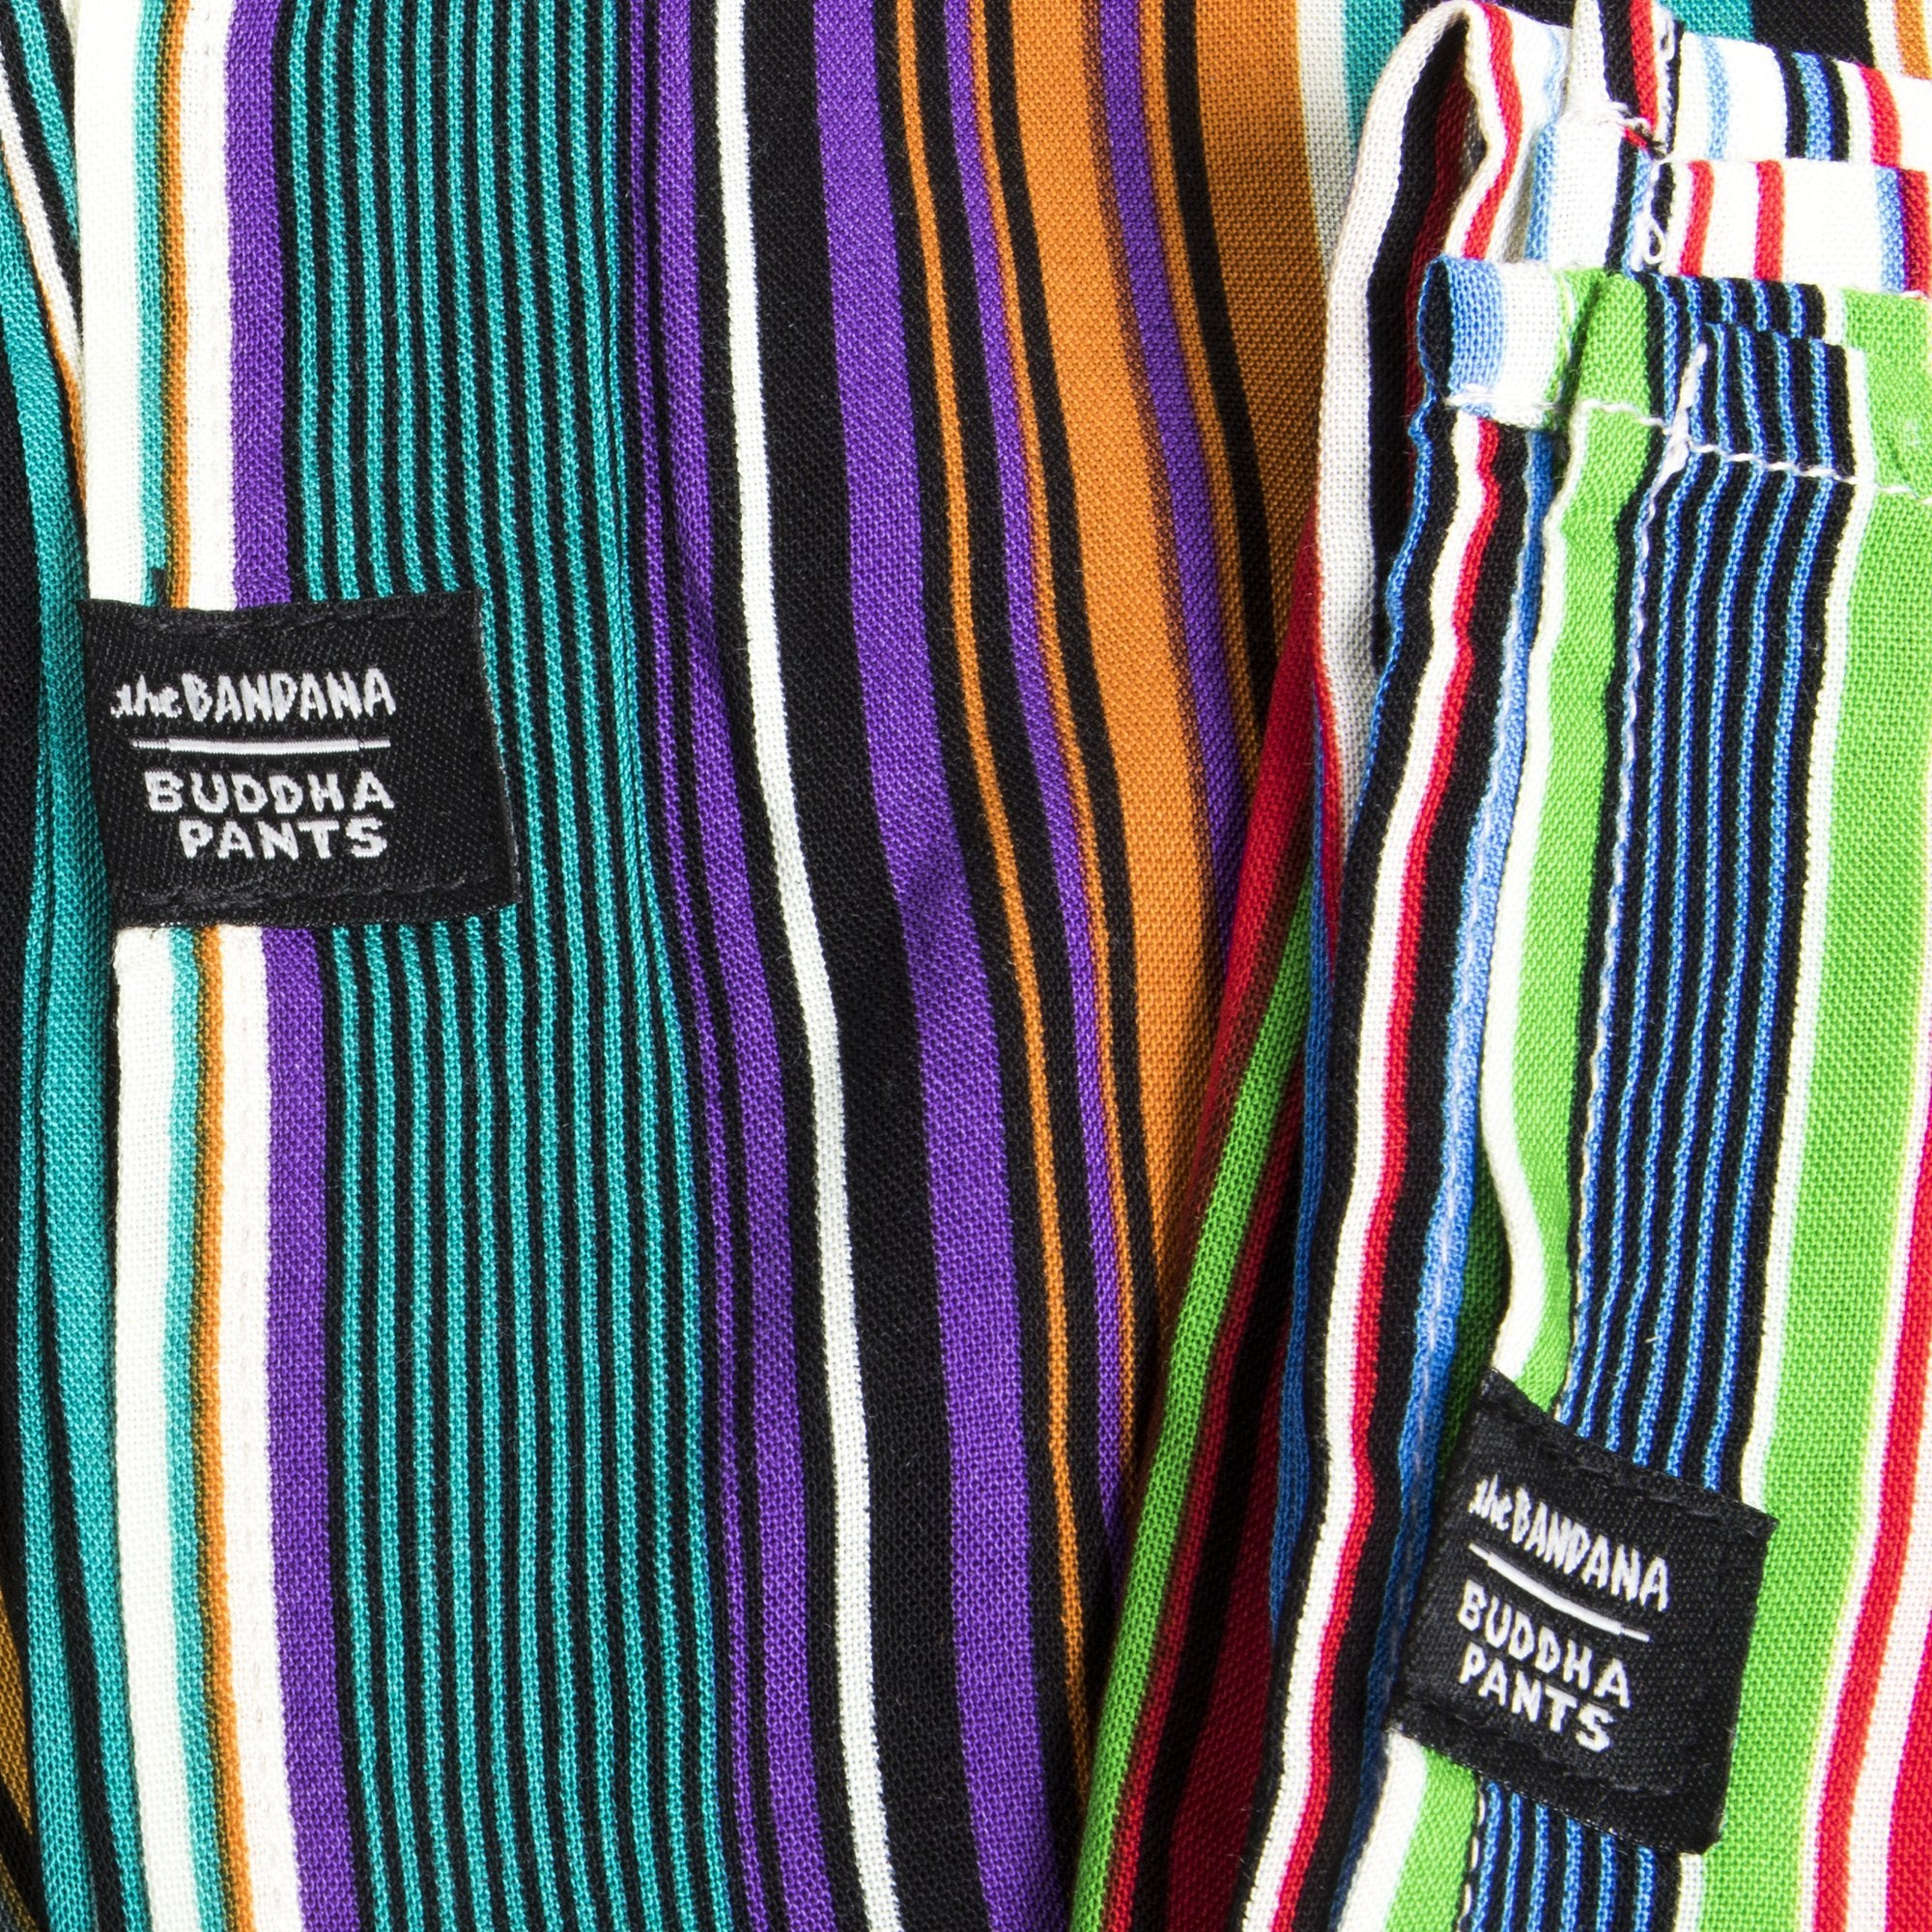 Striped Bandanas (3 PACK) By: Buddha Pants® - Buddha Pants®